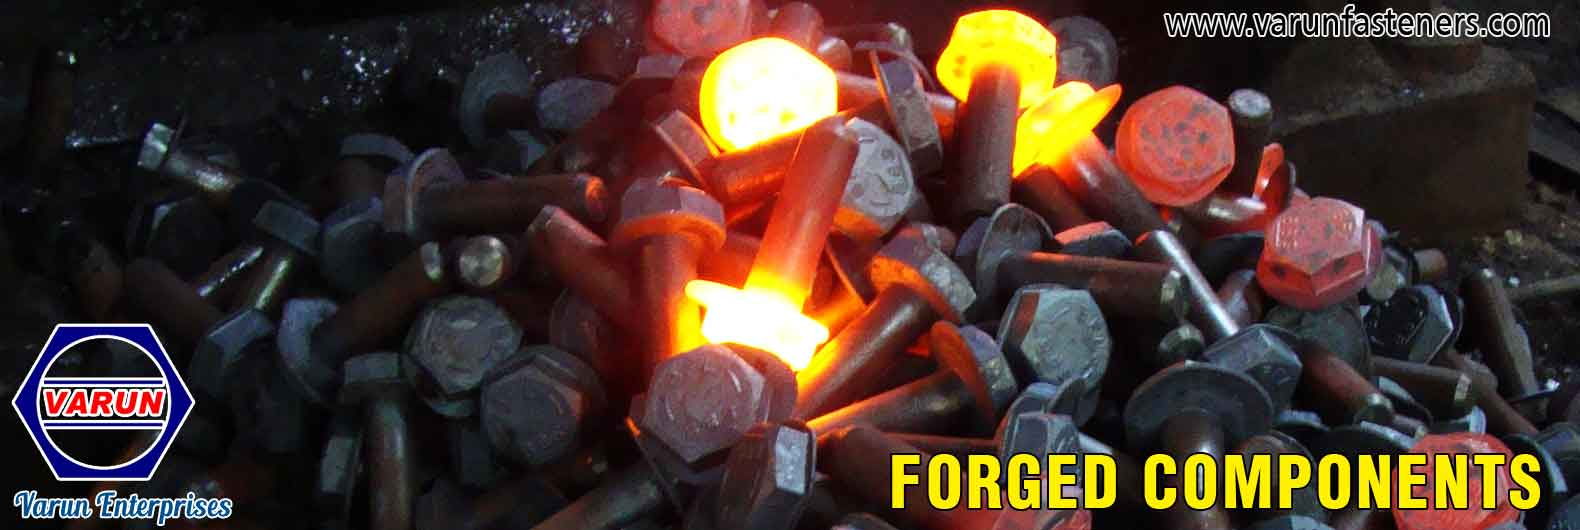 Forged Fasteners Forging Bolts Forged Nuts manufacturers exporters suppliers in India